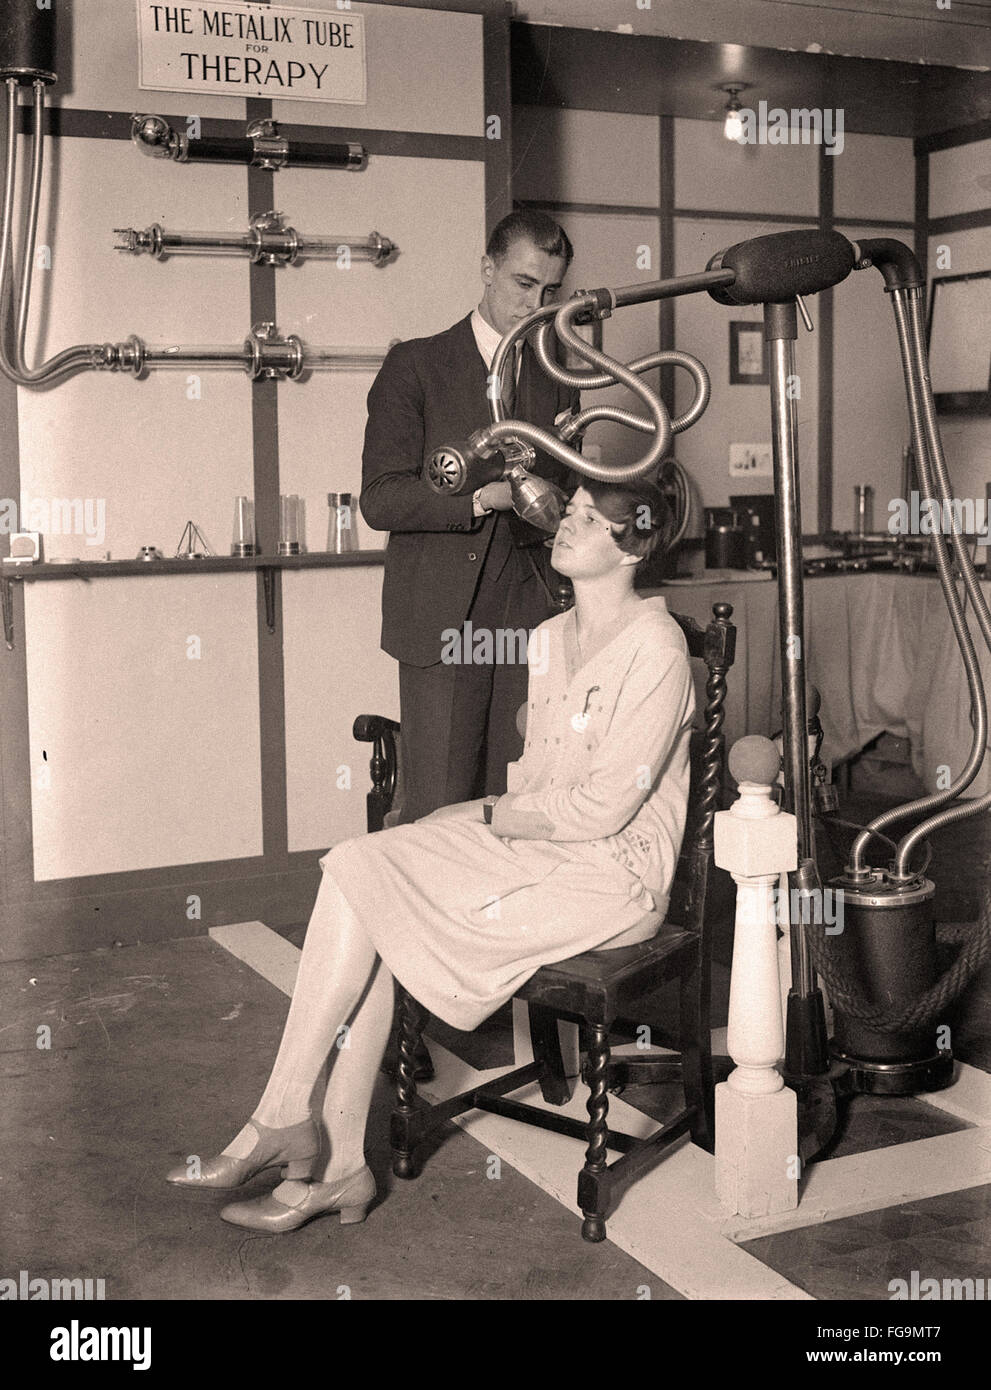 xrays in the 30's - Stock Image